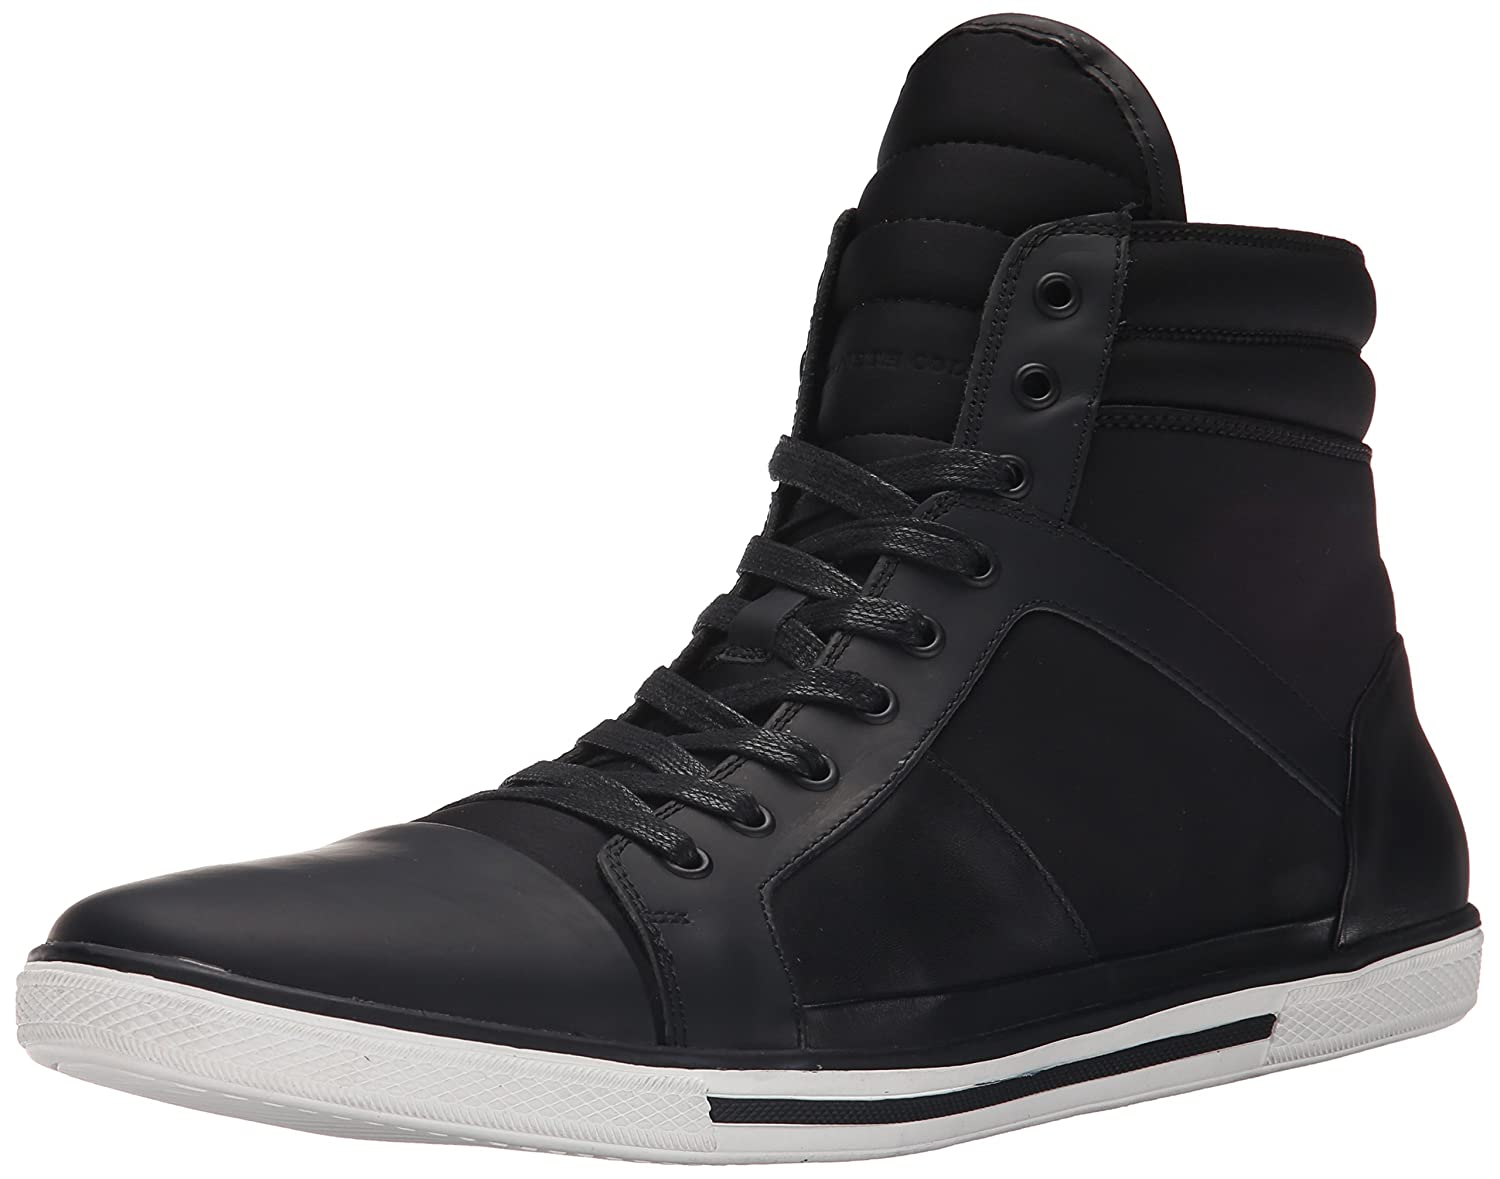 Kenneth Cole Up-Side Down Hombres Hombres Hombres Moda Zapatos 24ce87